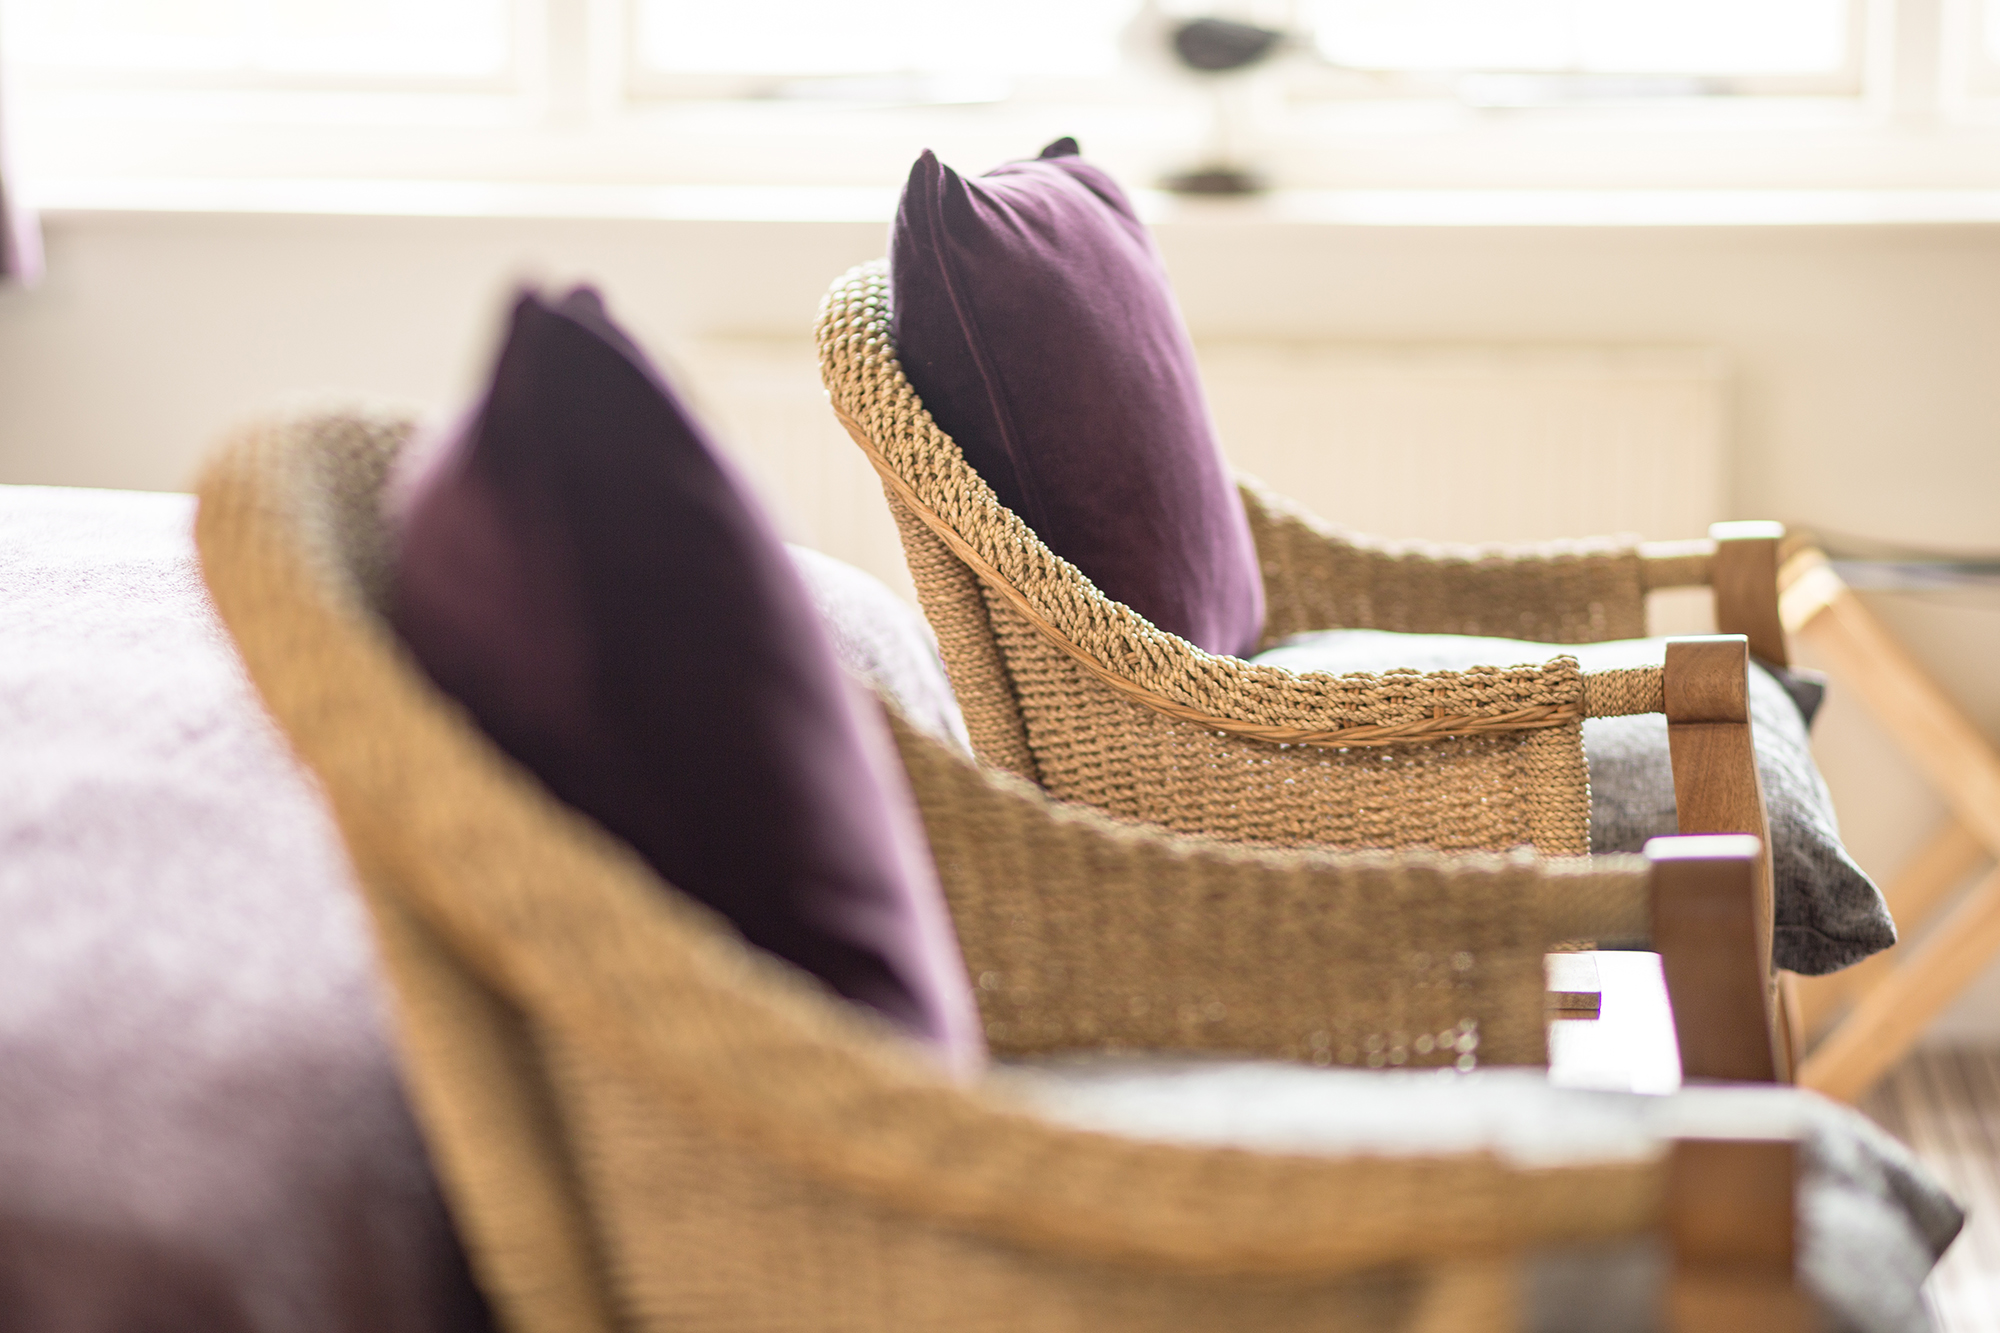 Wicker chairs in front of bed